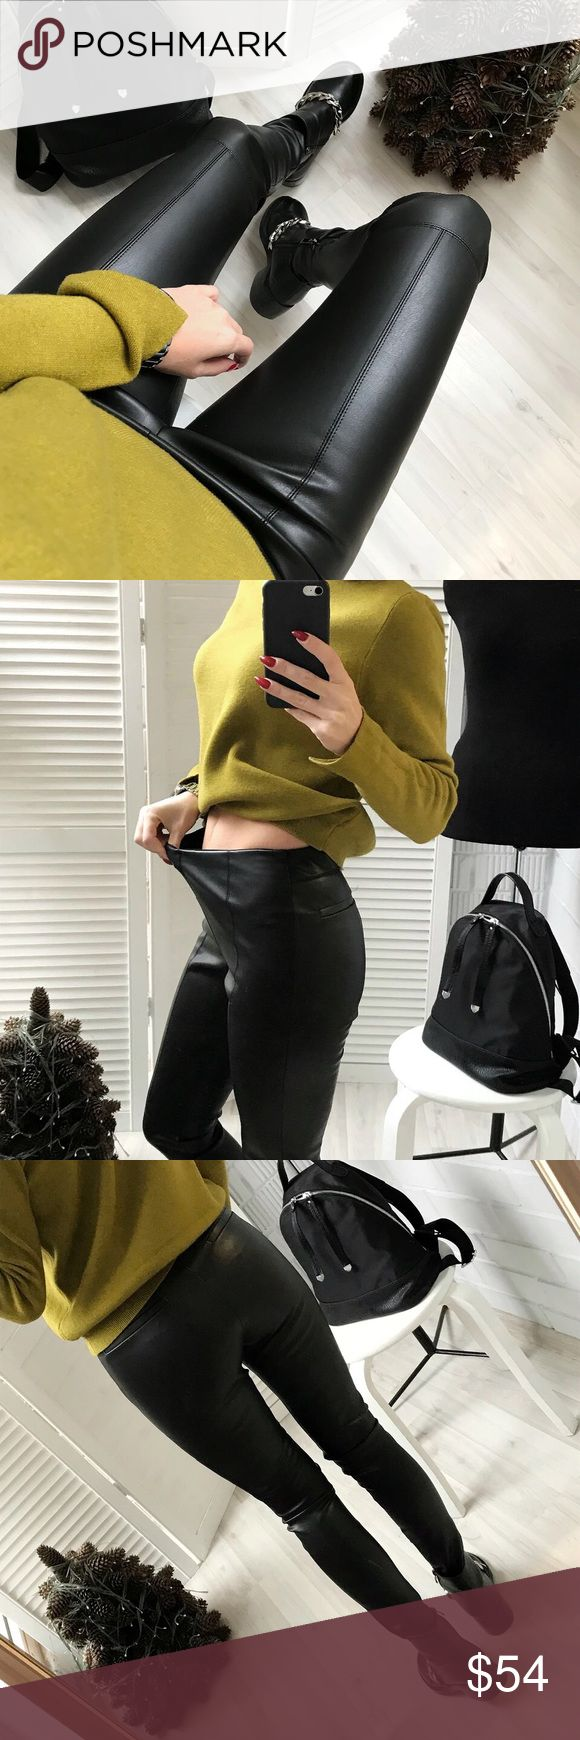 """""""Legends Are Made"""" magical blend of cotton and vegan leather to make you feel invincible, flat front style, pencil pant design, elastic waist with zipper detailing around the ankle, high waisted for maximum comfort, seriously, you will LIVE in these leggings and cultivate your inner legend.  Bundle to get a discount. TSH Pants"""